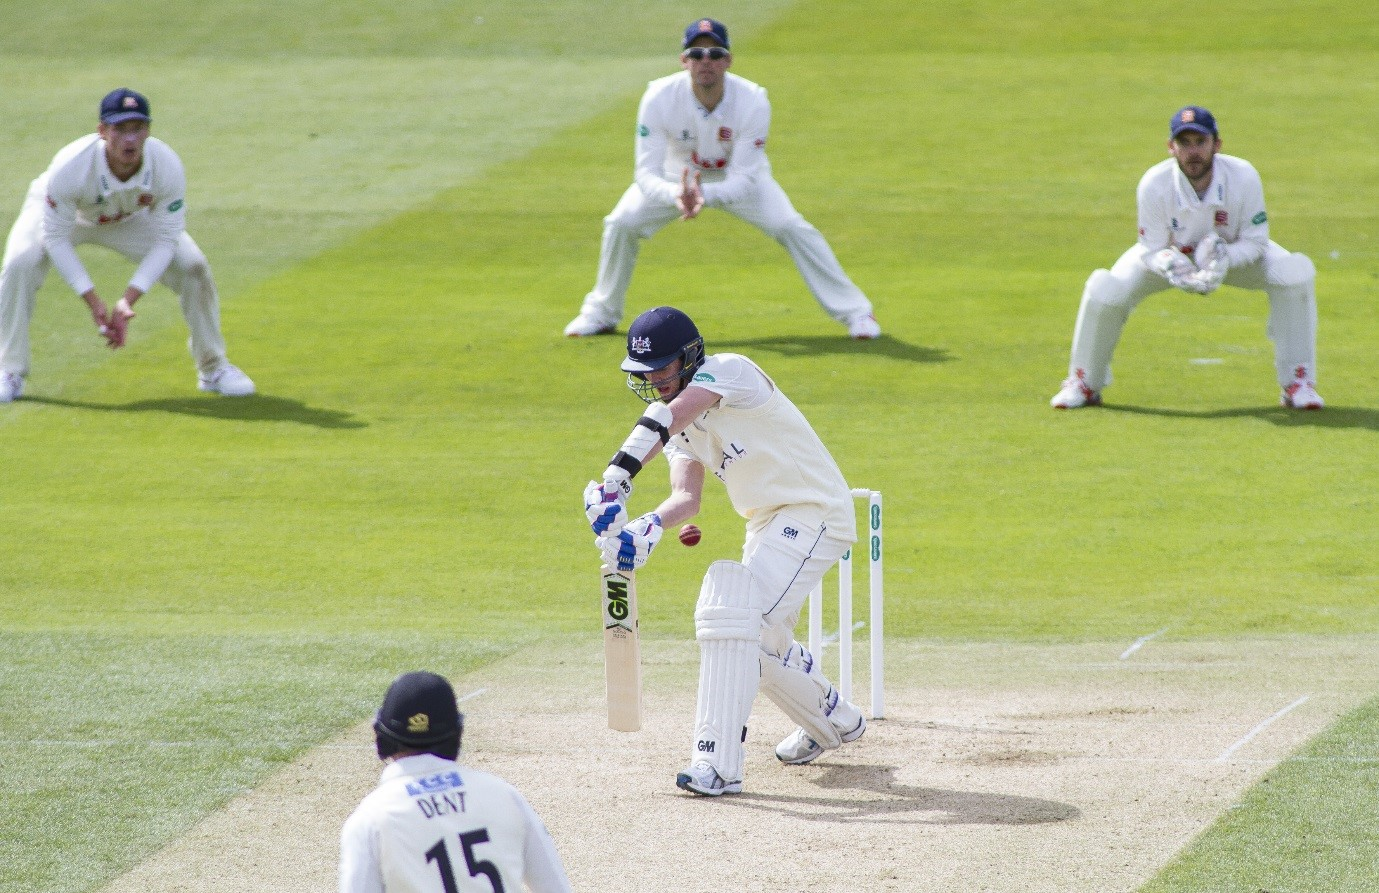 The Sports Archives Blog - The Sports Archives - England's Best Cricket Captains